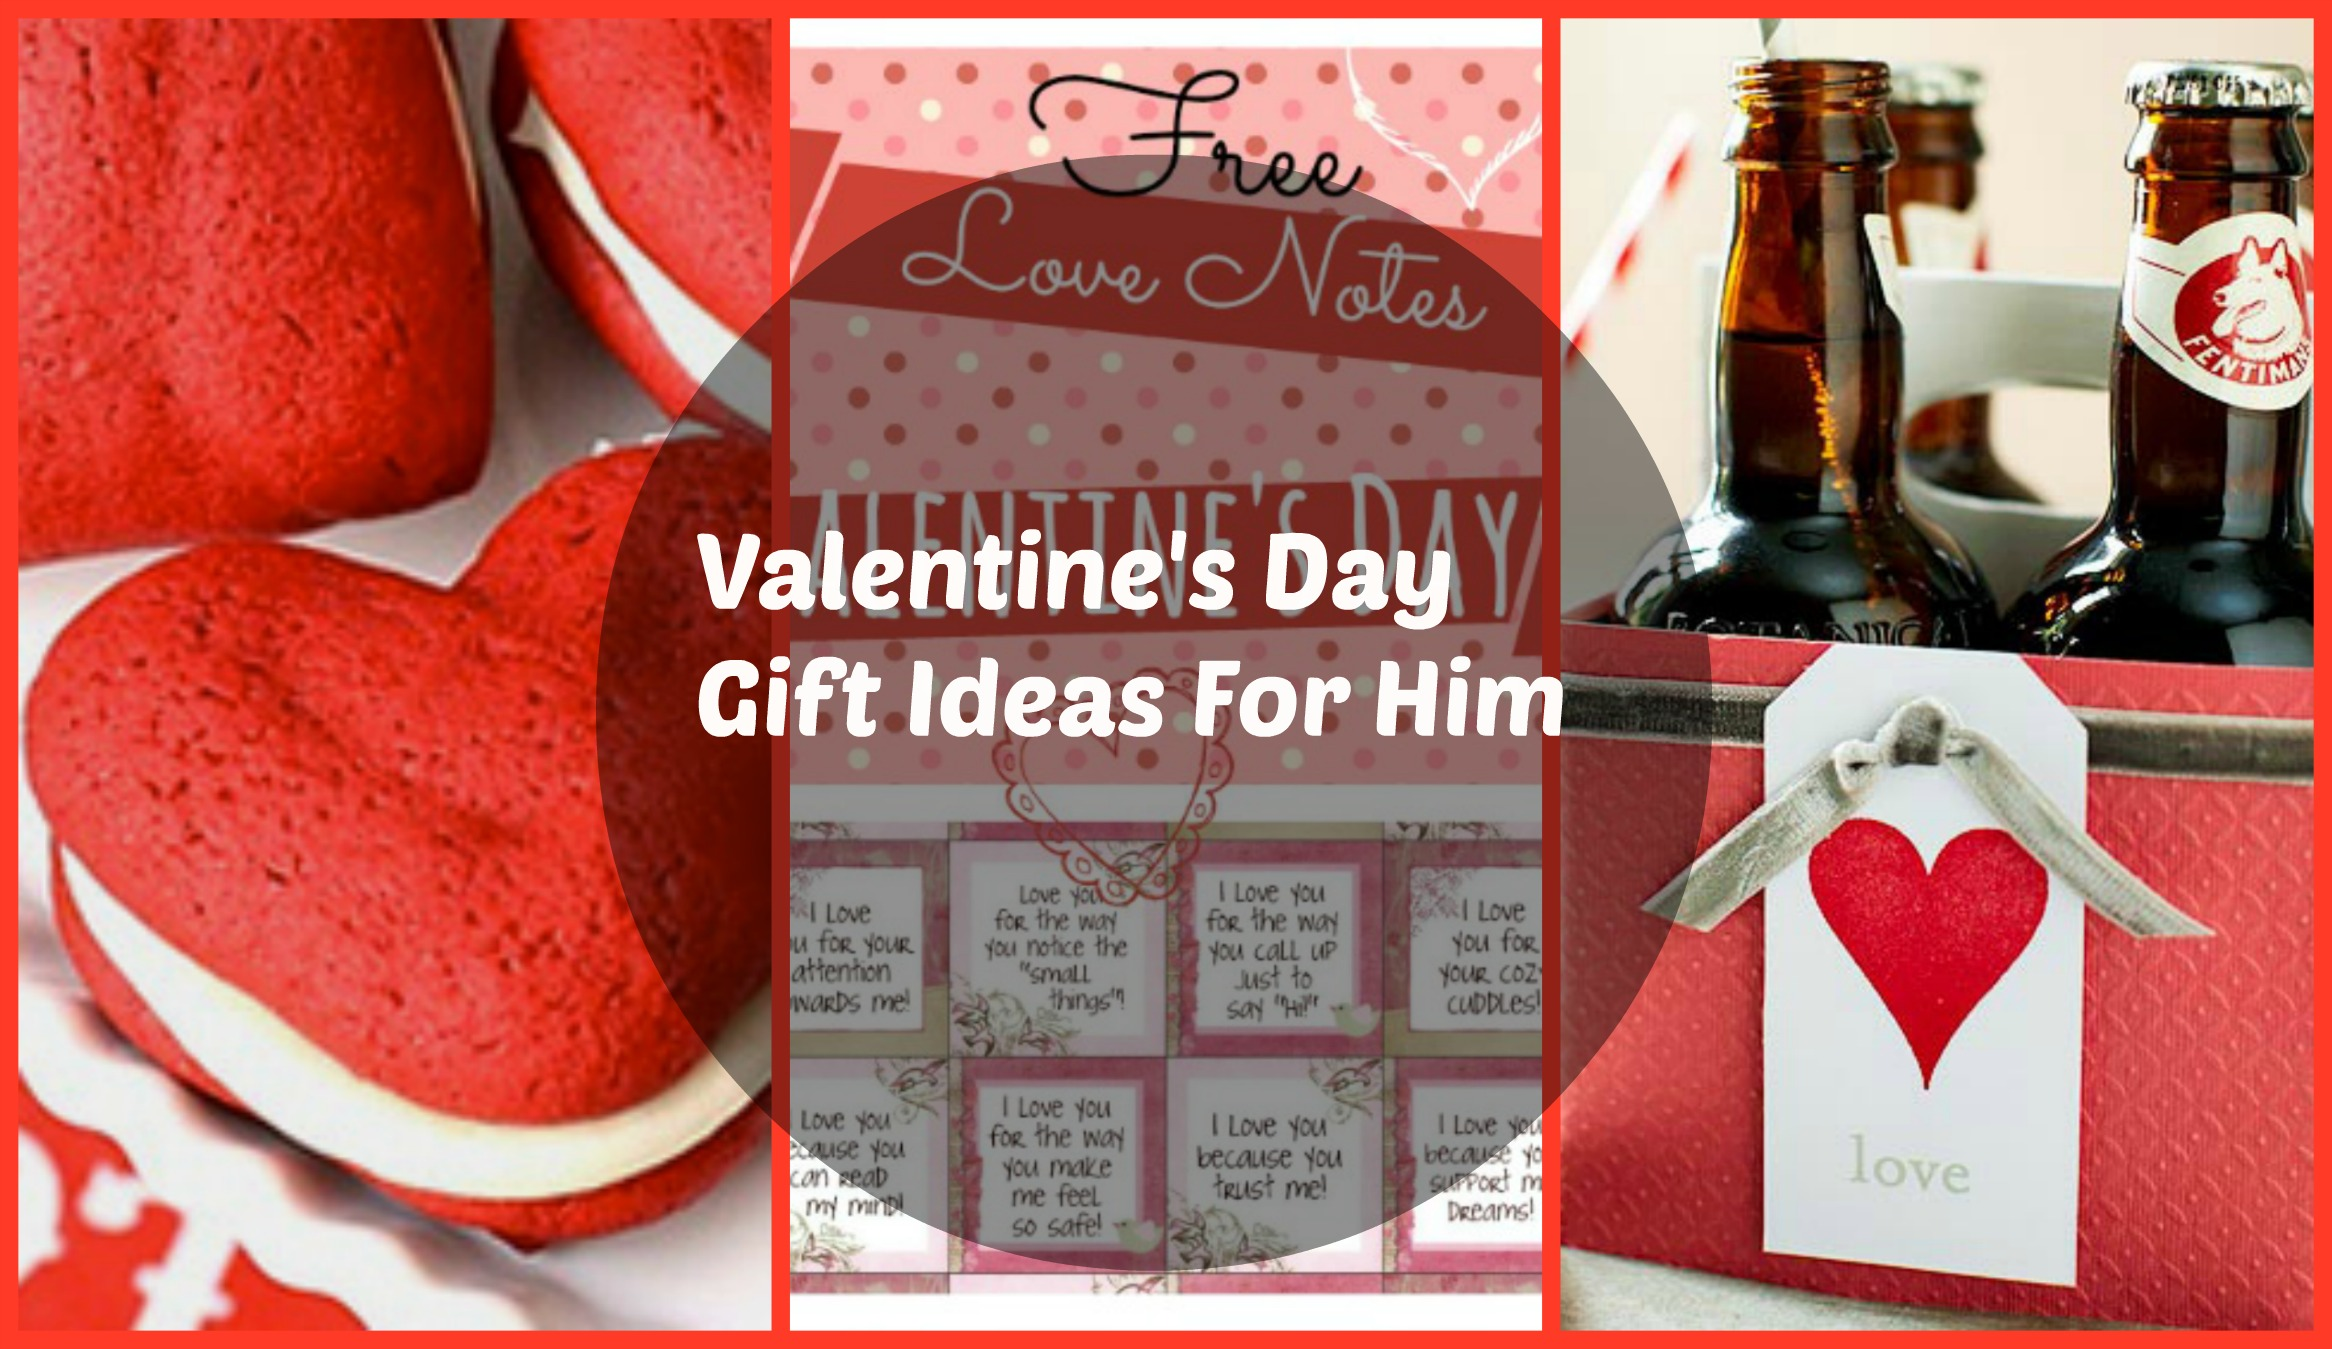 valentines day ideas for him - photo #7